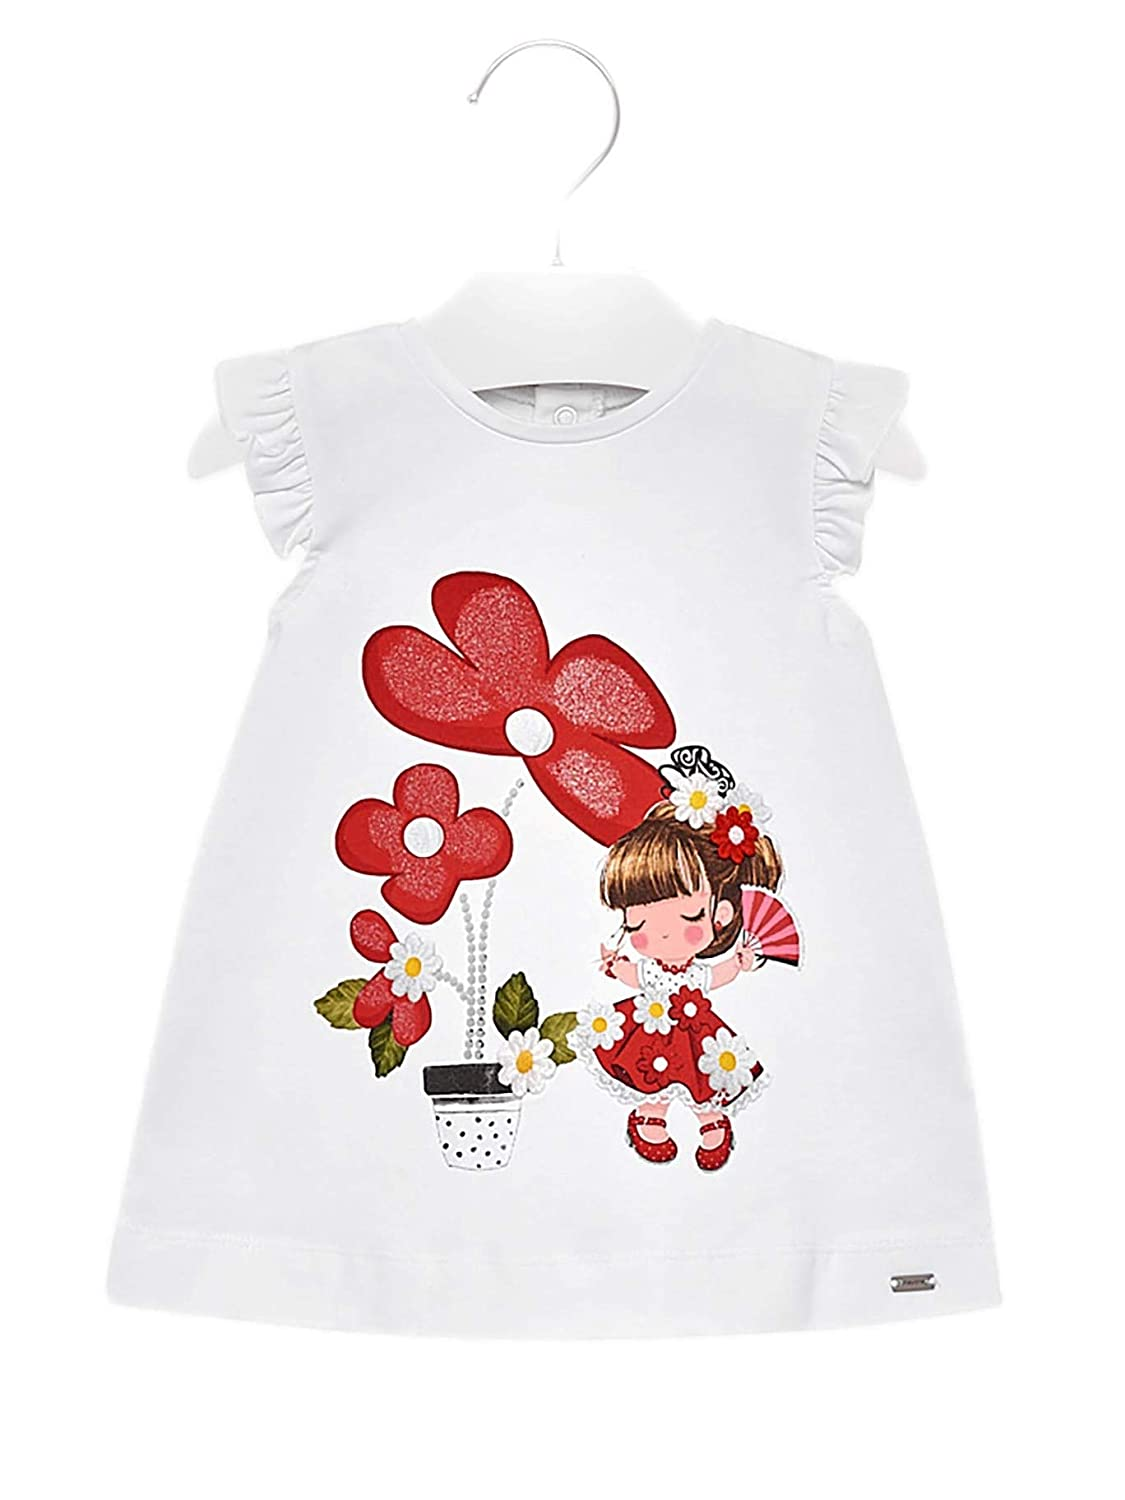 322f53b45662b0 Amazon.com: Mayoral - Knit Dress for Baby-Girls - 1932, White-Red: Clothing